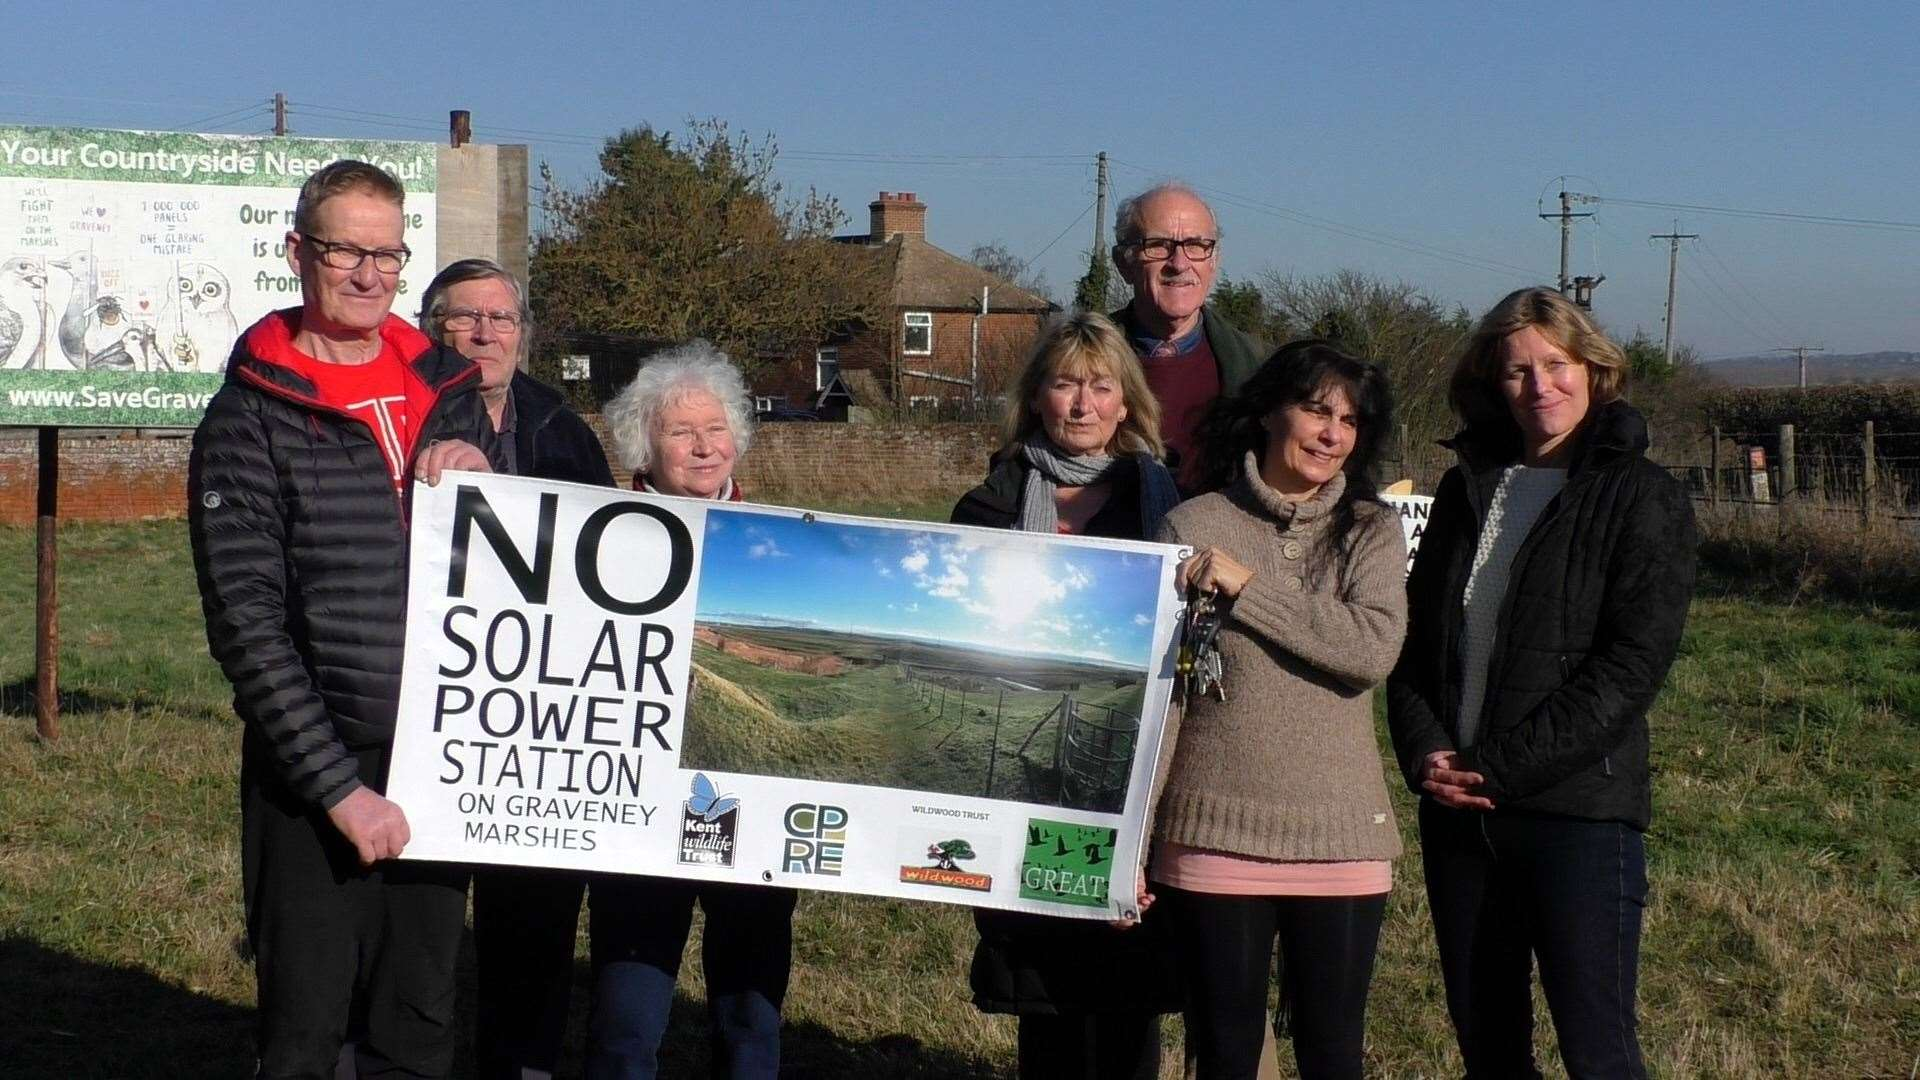 Graveney Marshes campaigners